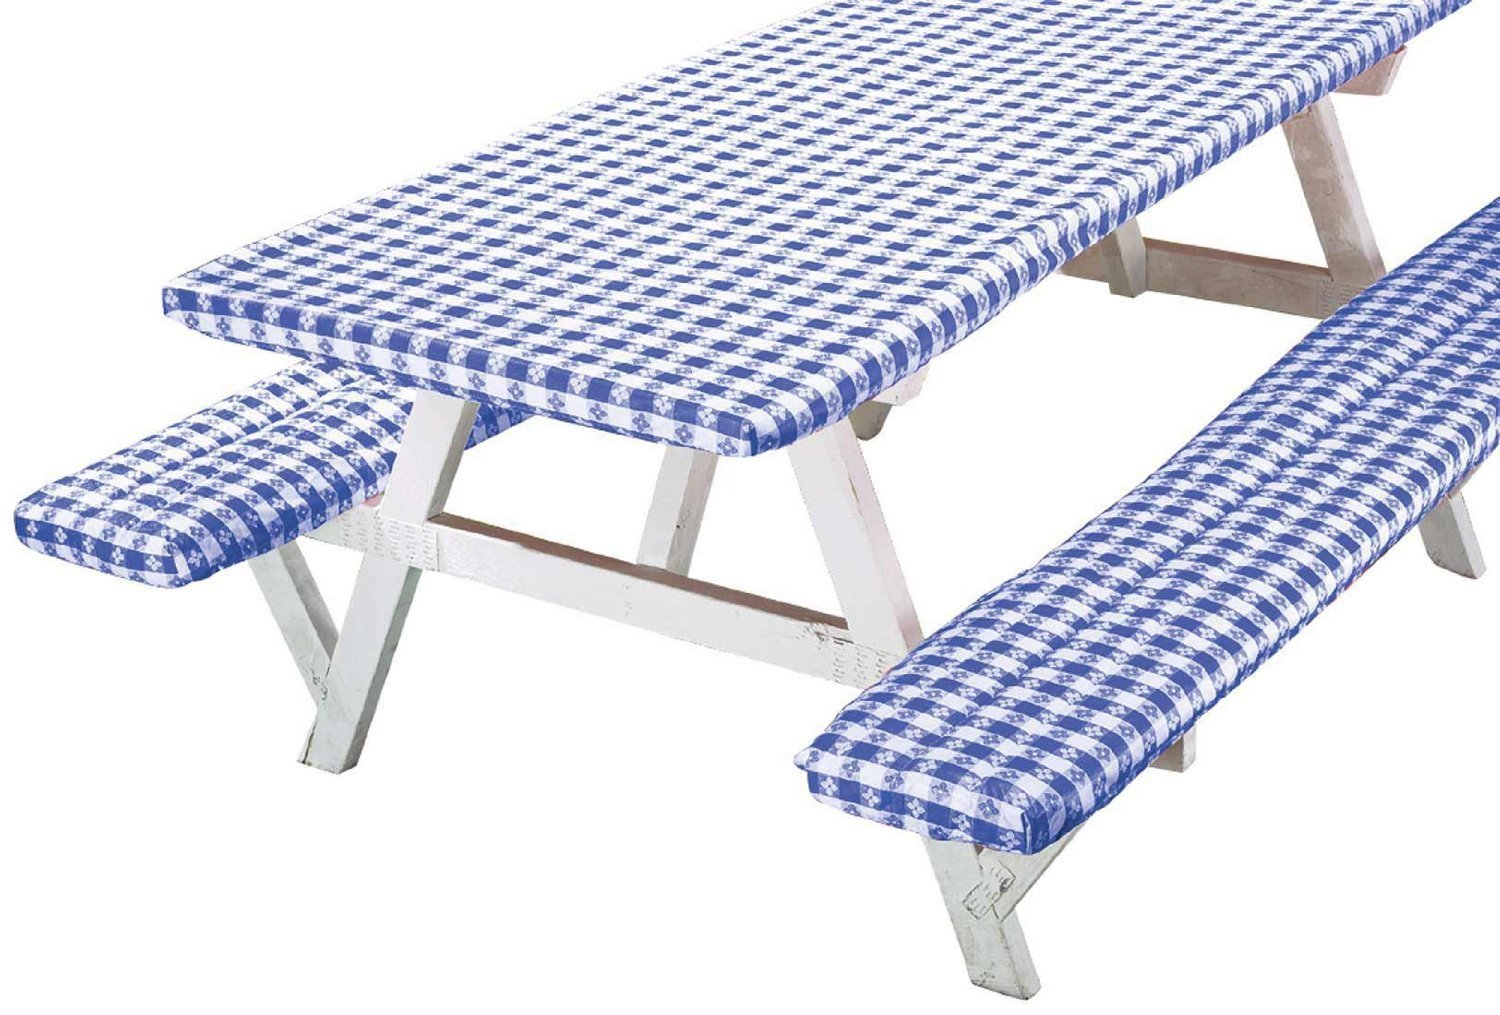 Deluxe Picnic Table Cover Set Of Walmartcom - Outdoor picnic table covers